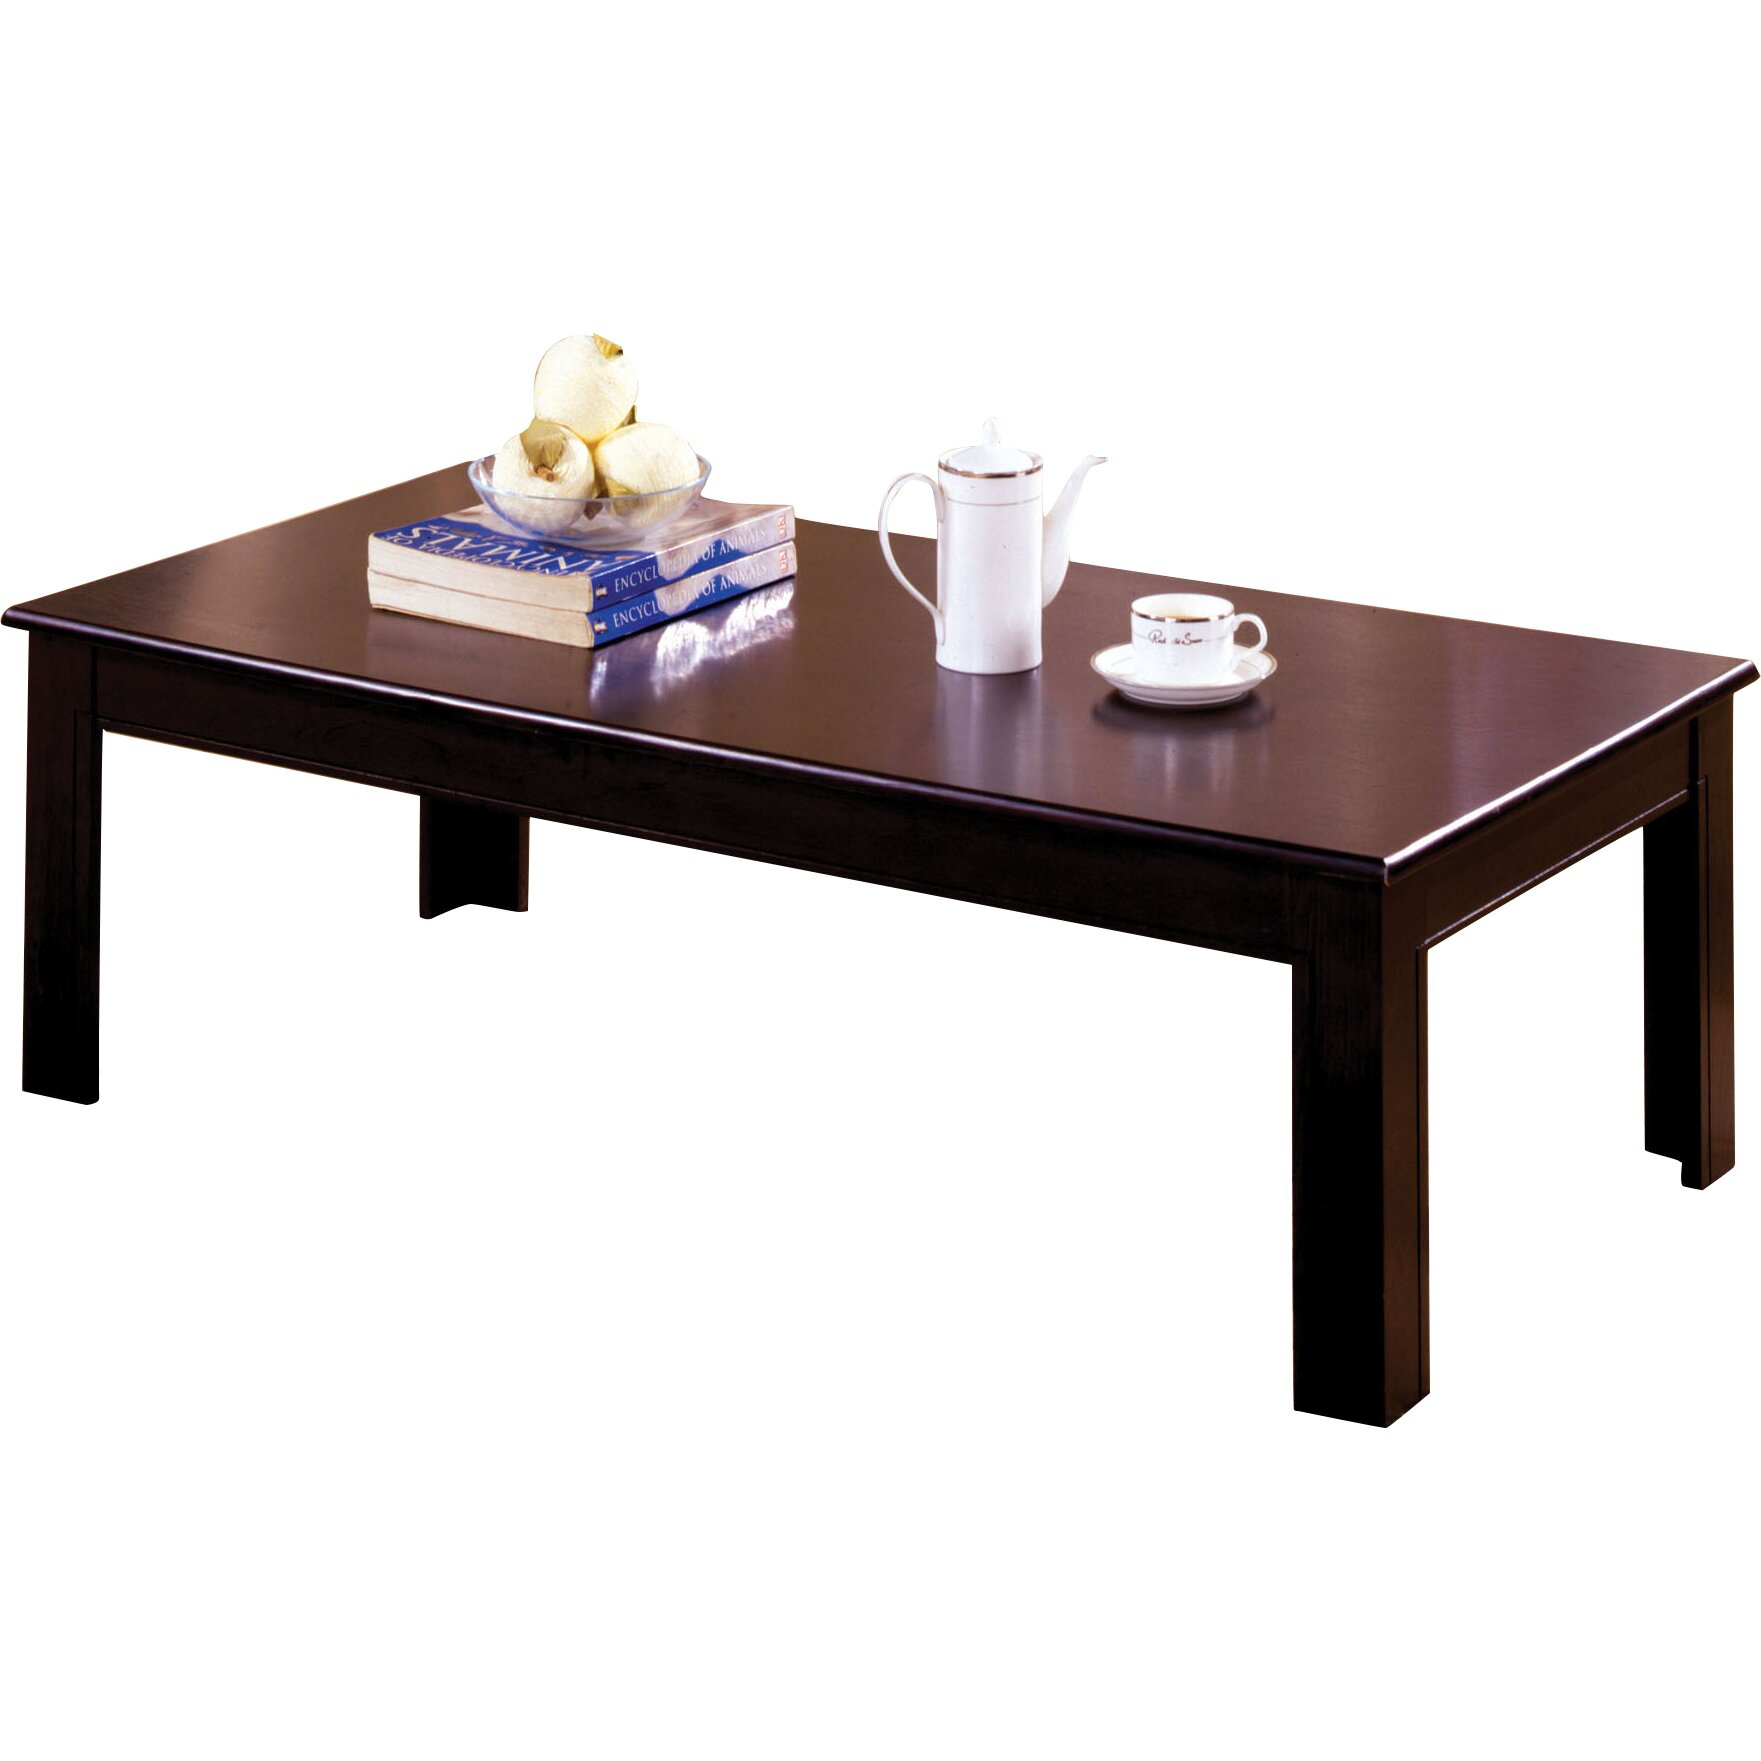 hokku designs frixe 3 piece coffee table set reviews. Black Bedroom Furniture Sets. Home Design Ideas